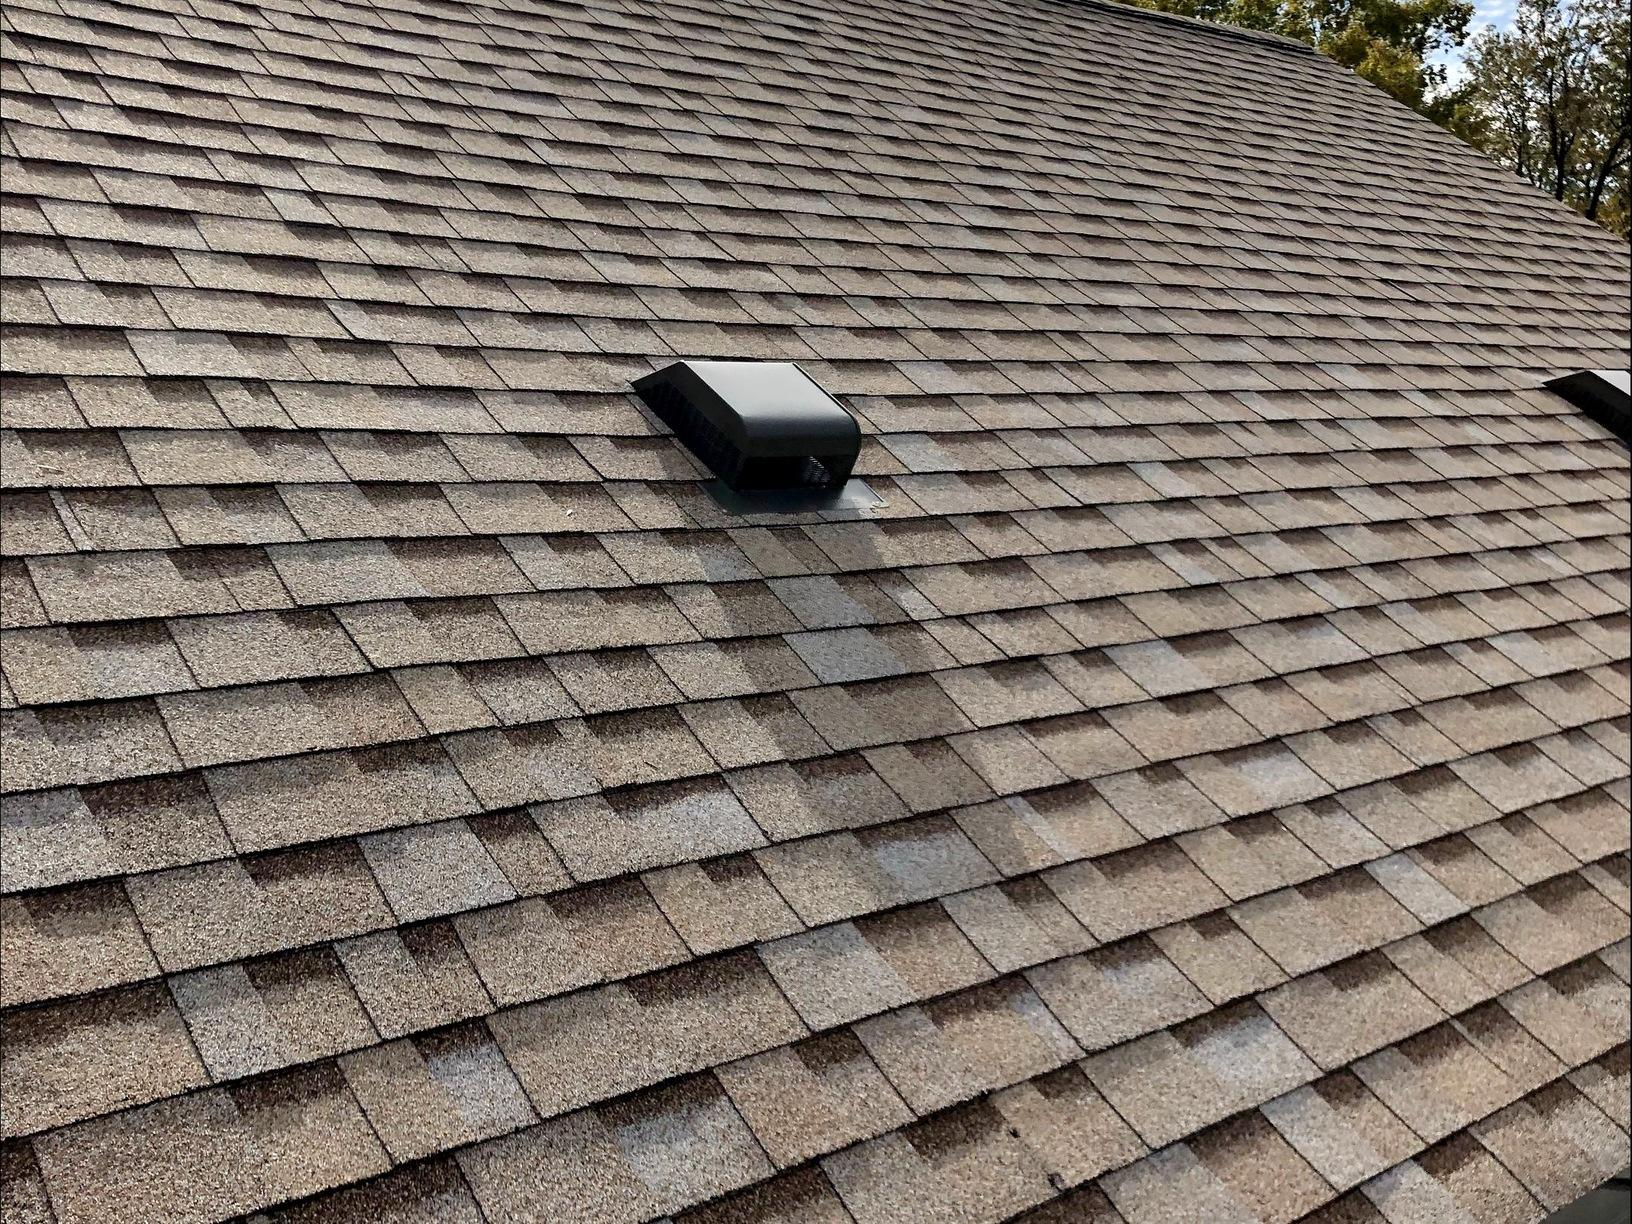 Roof Replacement for Tonganoxie, KS Home - After Photo